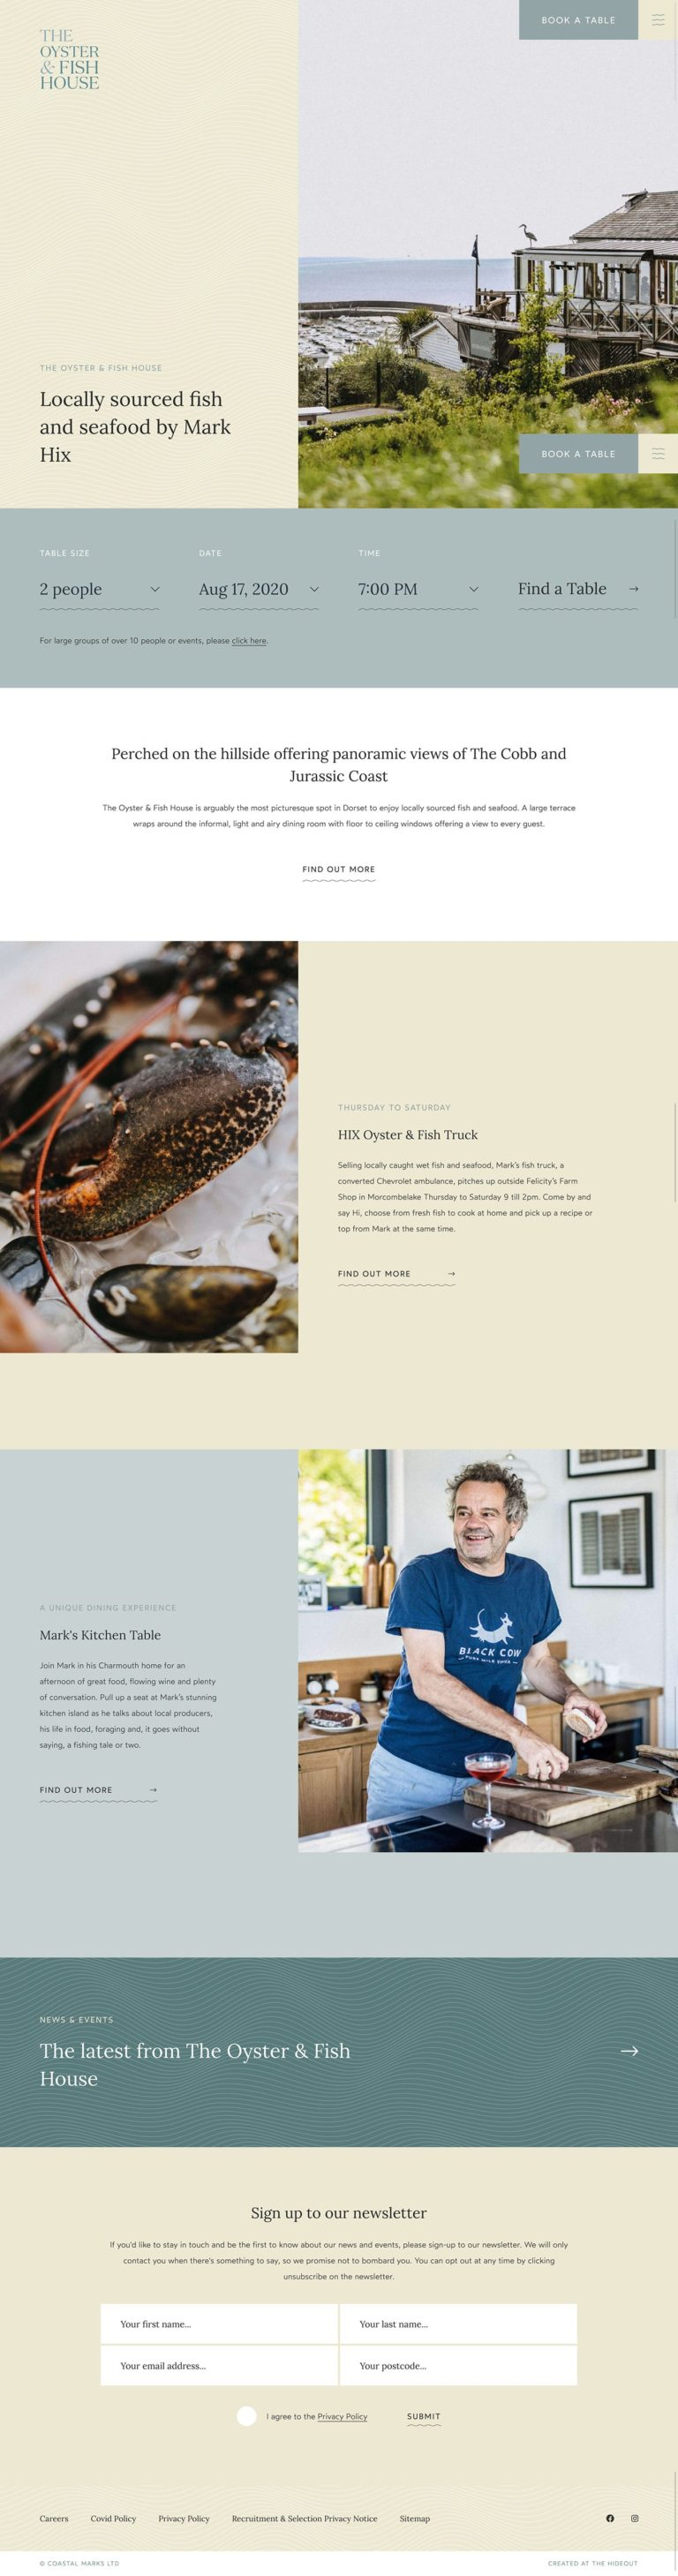 The Oyster & Fish House | Mark Hix